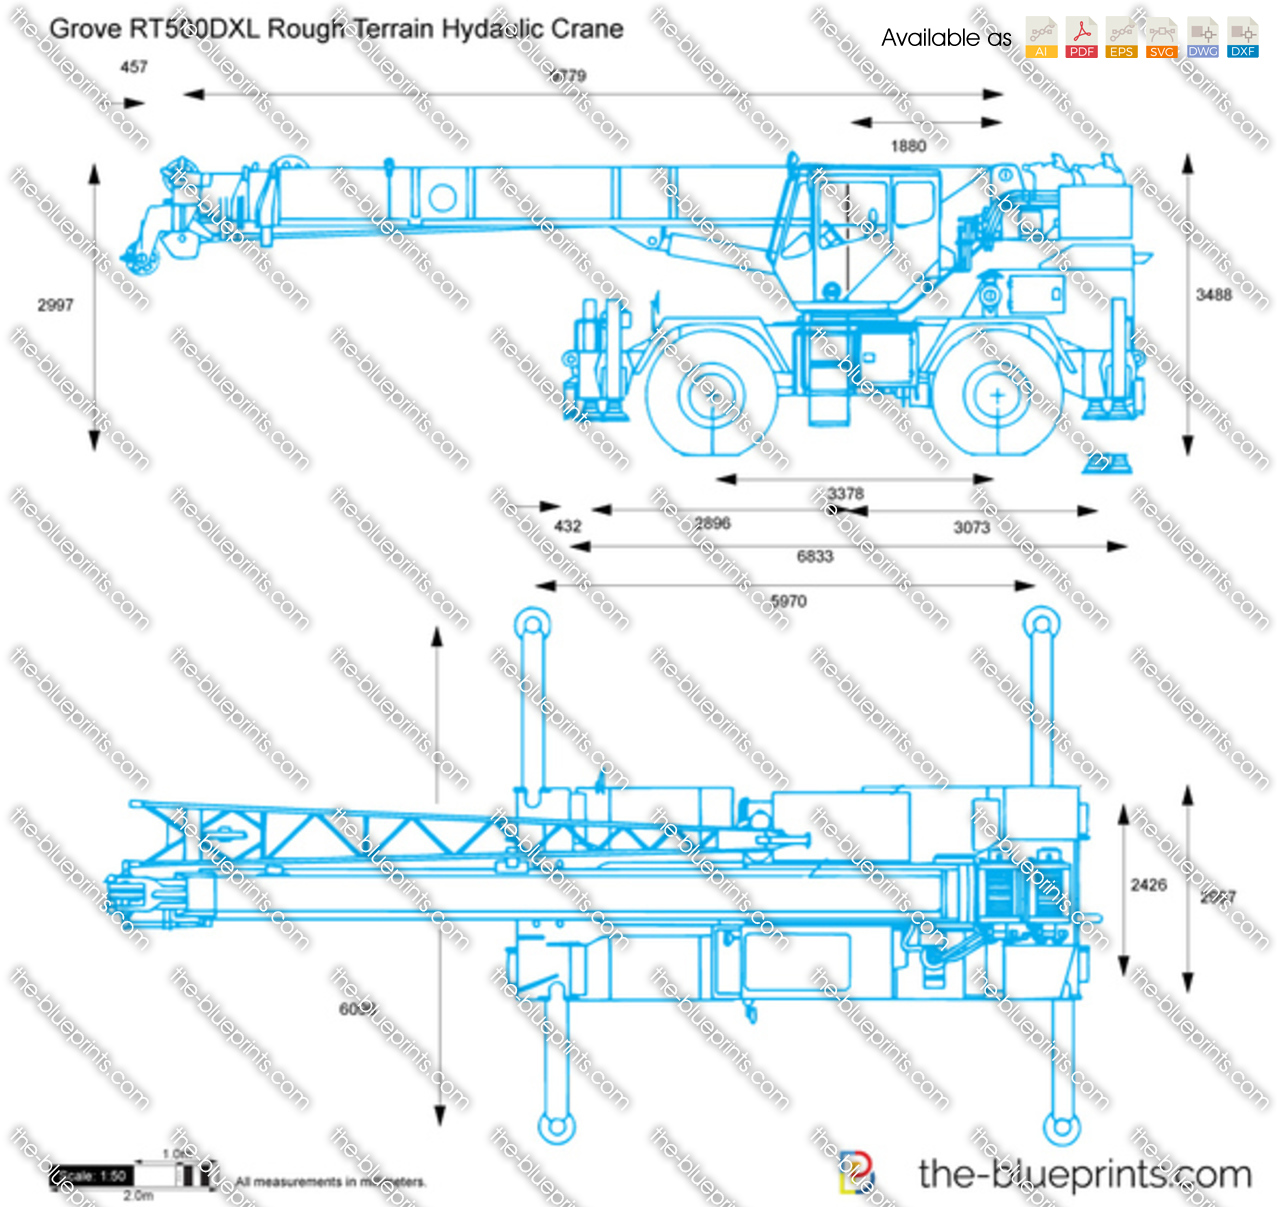 Grove RT500DXL Rough Terrain Hydaulic Crane